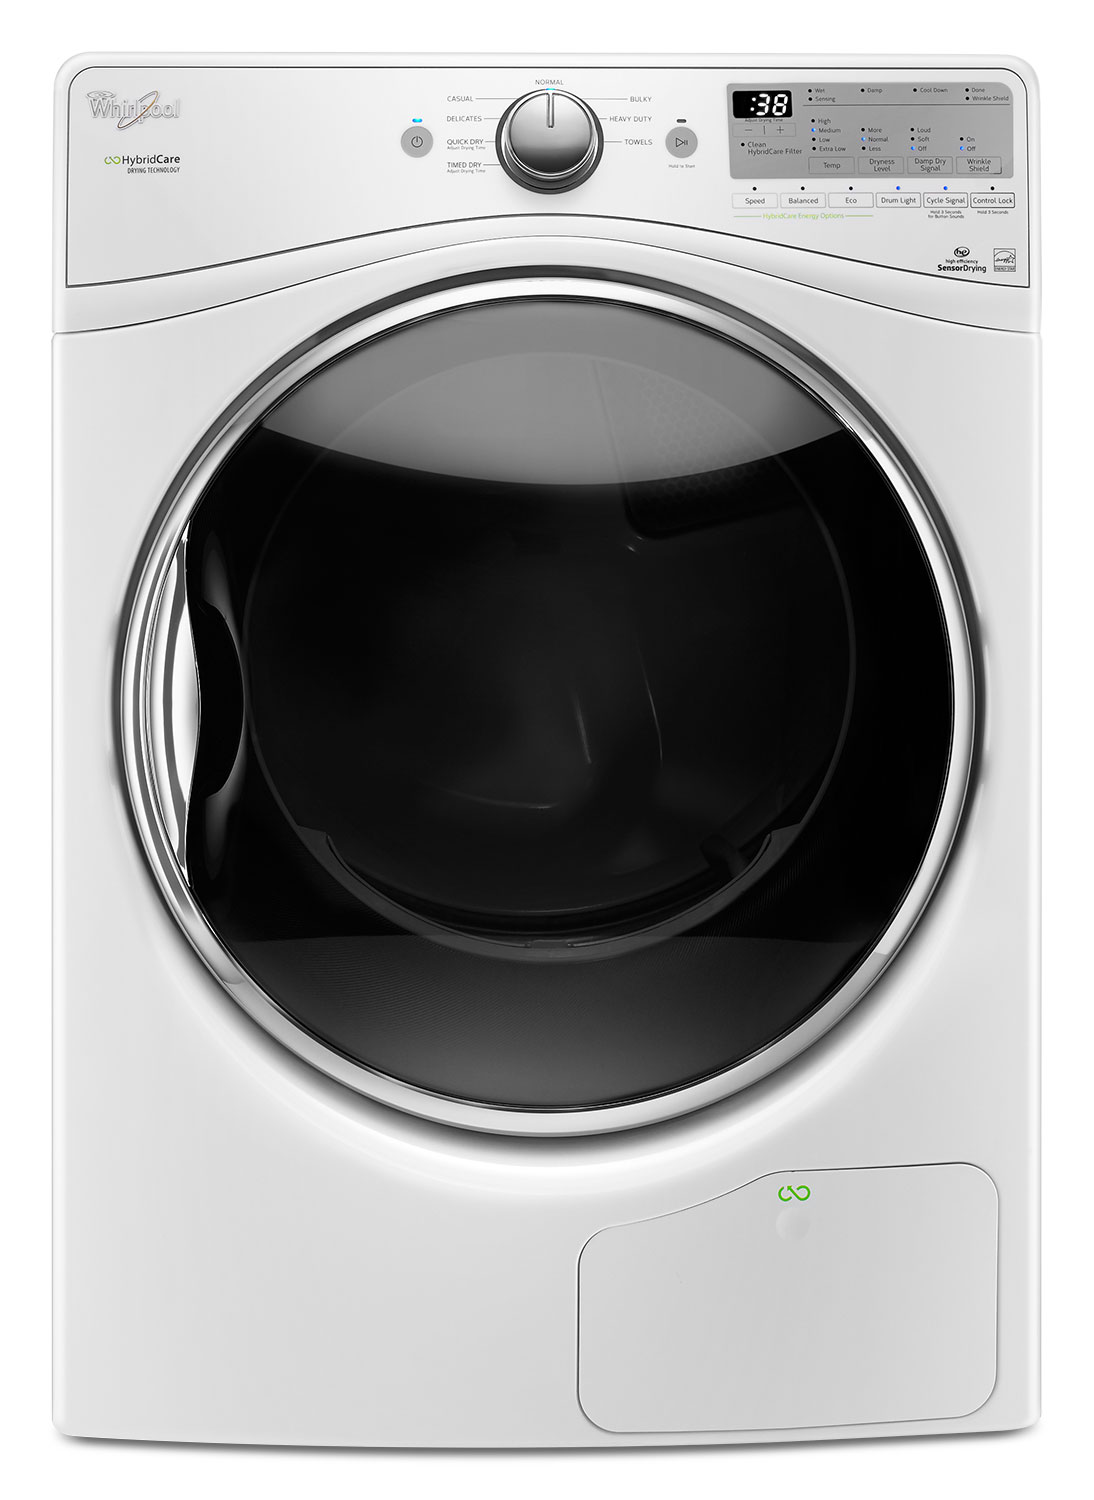 Washers and Dryers - Maytag 7.4 Cu. Ft. Ventless Electric Dryer – YWED9290FW